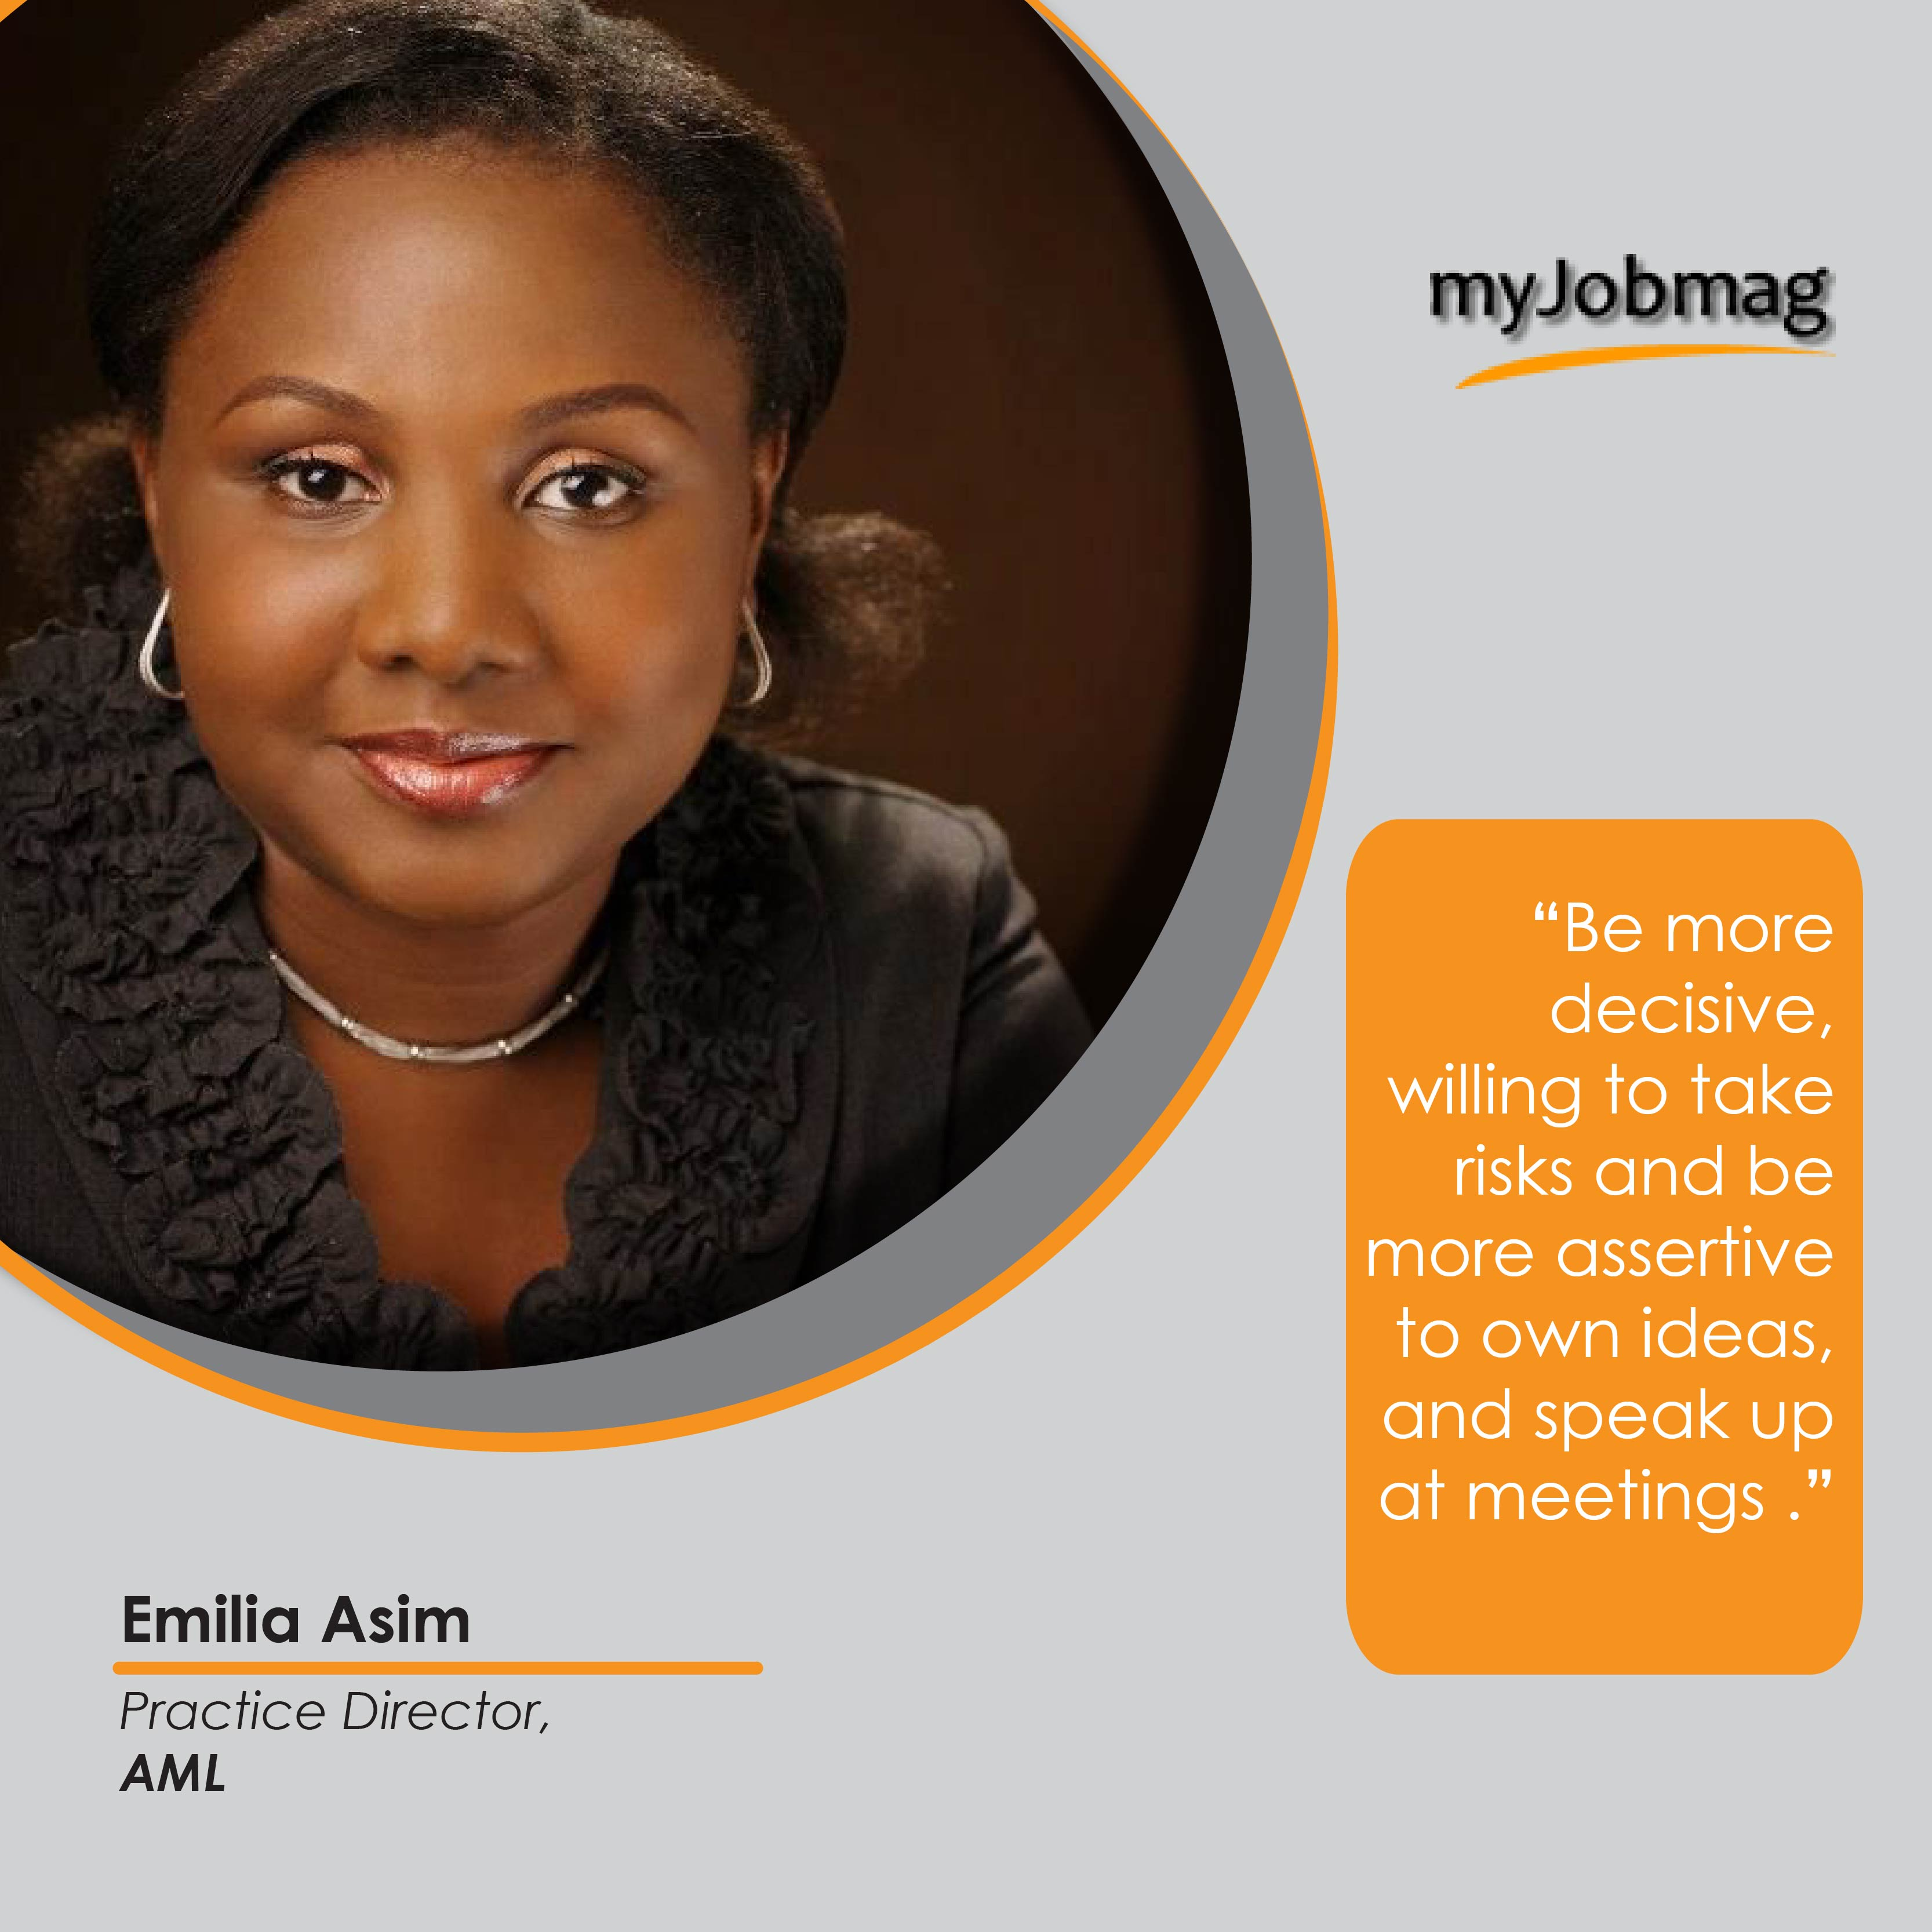 Emilia Asim career advice MyJobMag